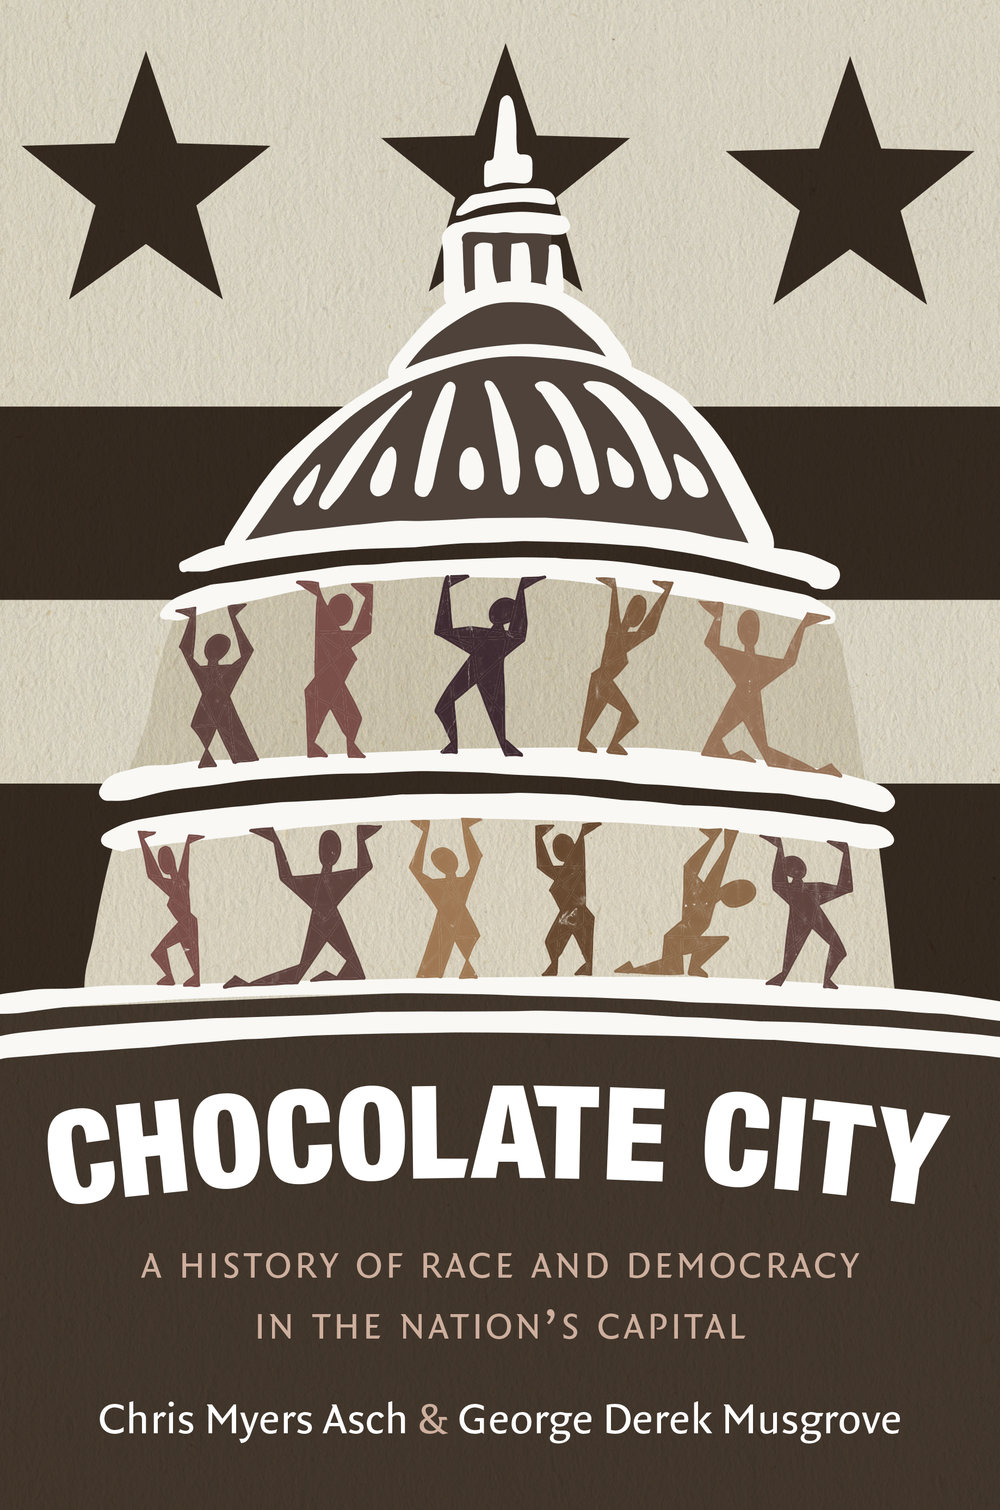 Choclate City cover image.jpg